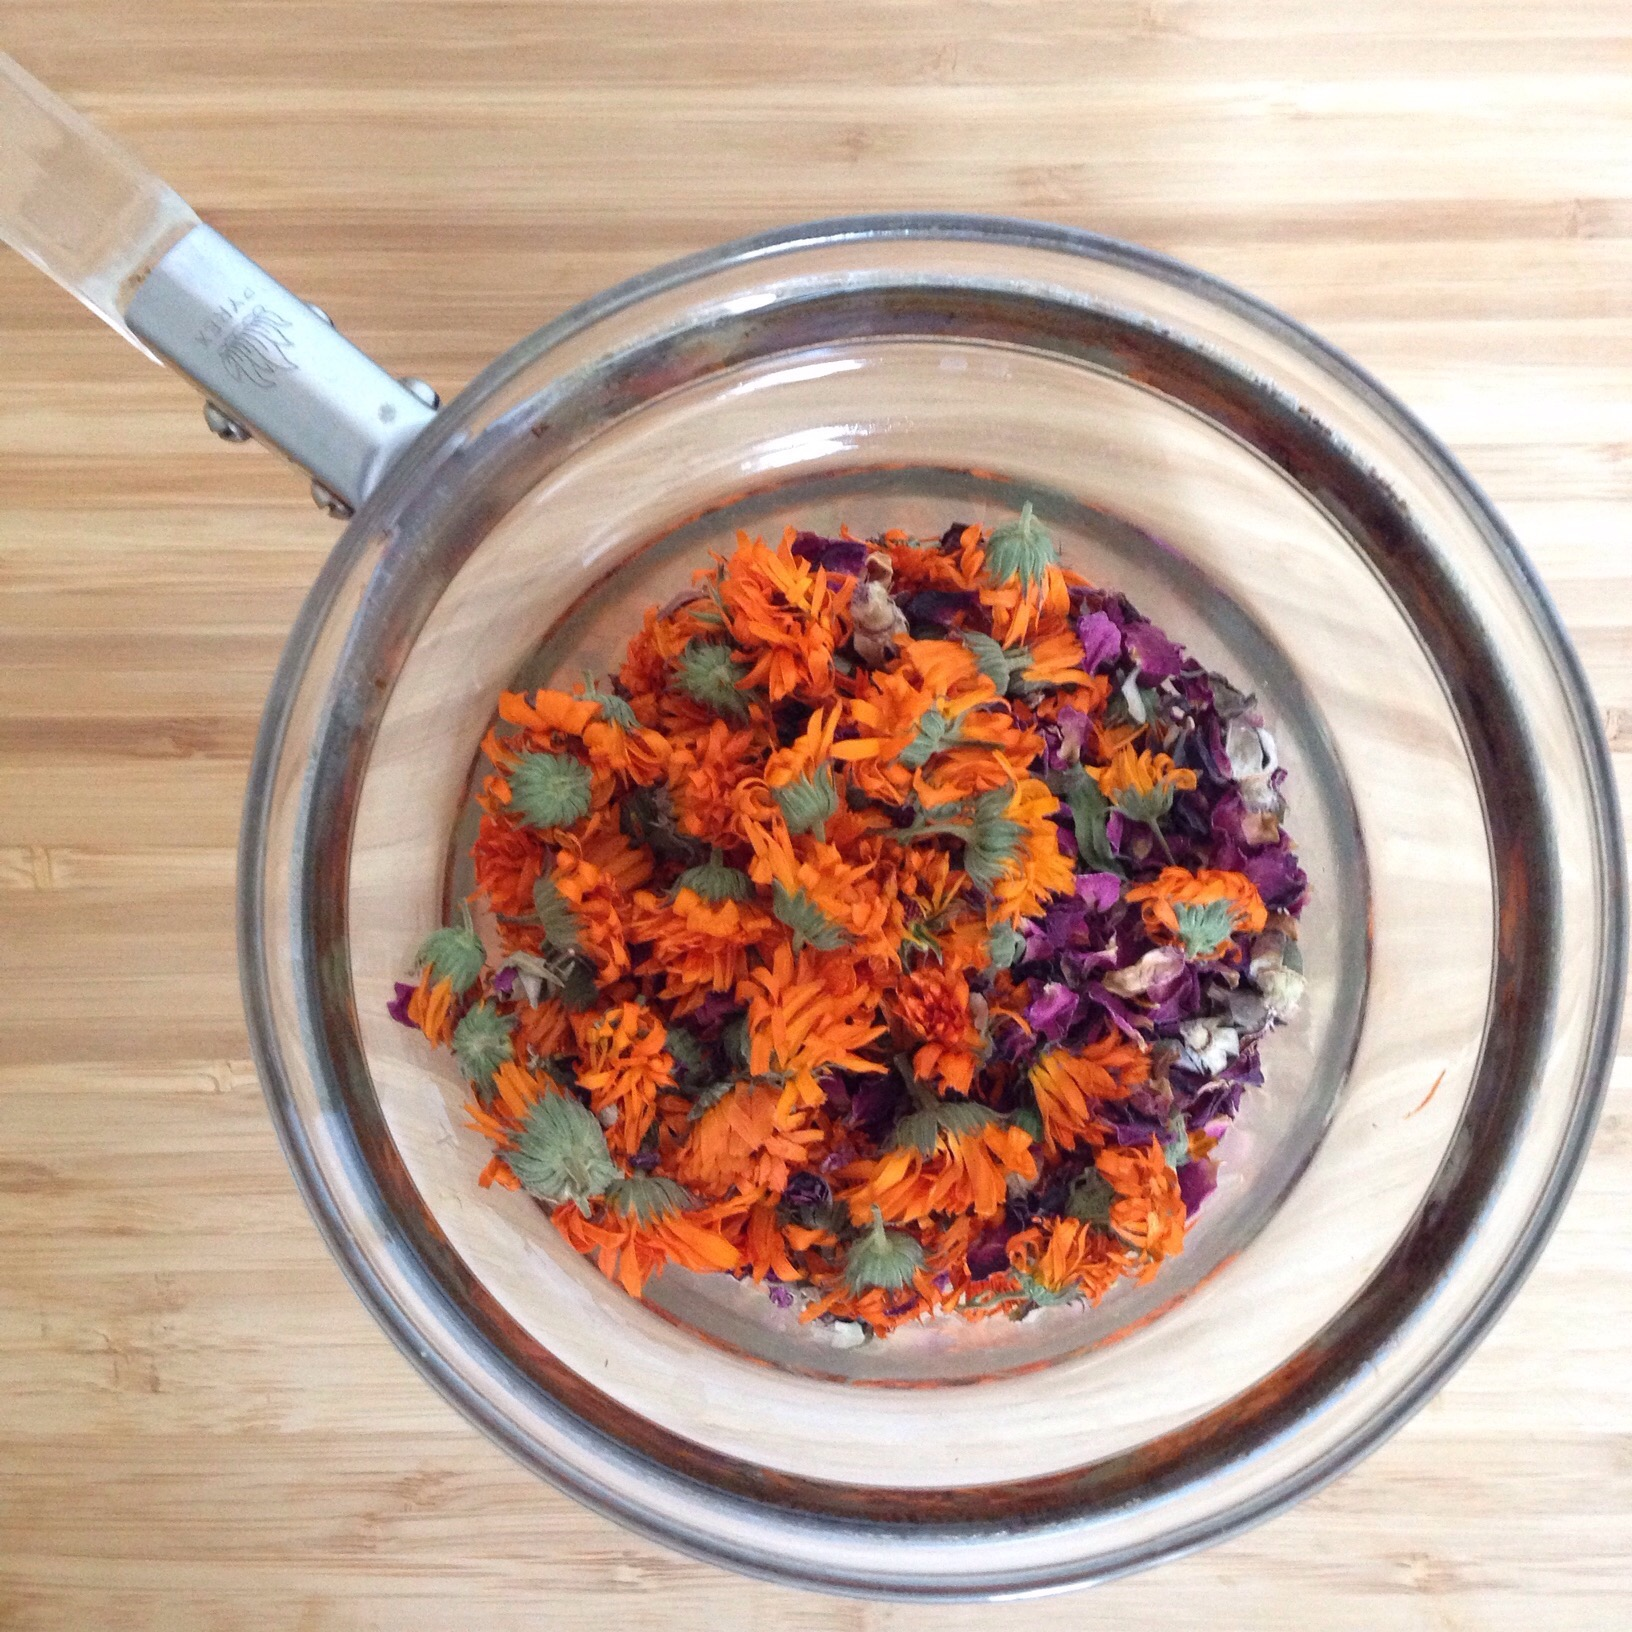 Dried calendula and rose petals to infuse into oil in a double boiler